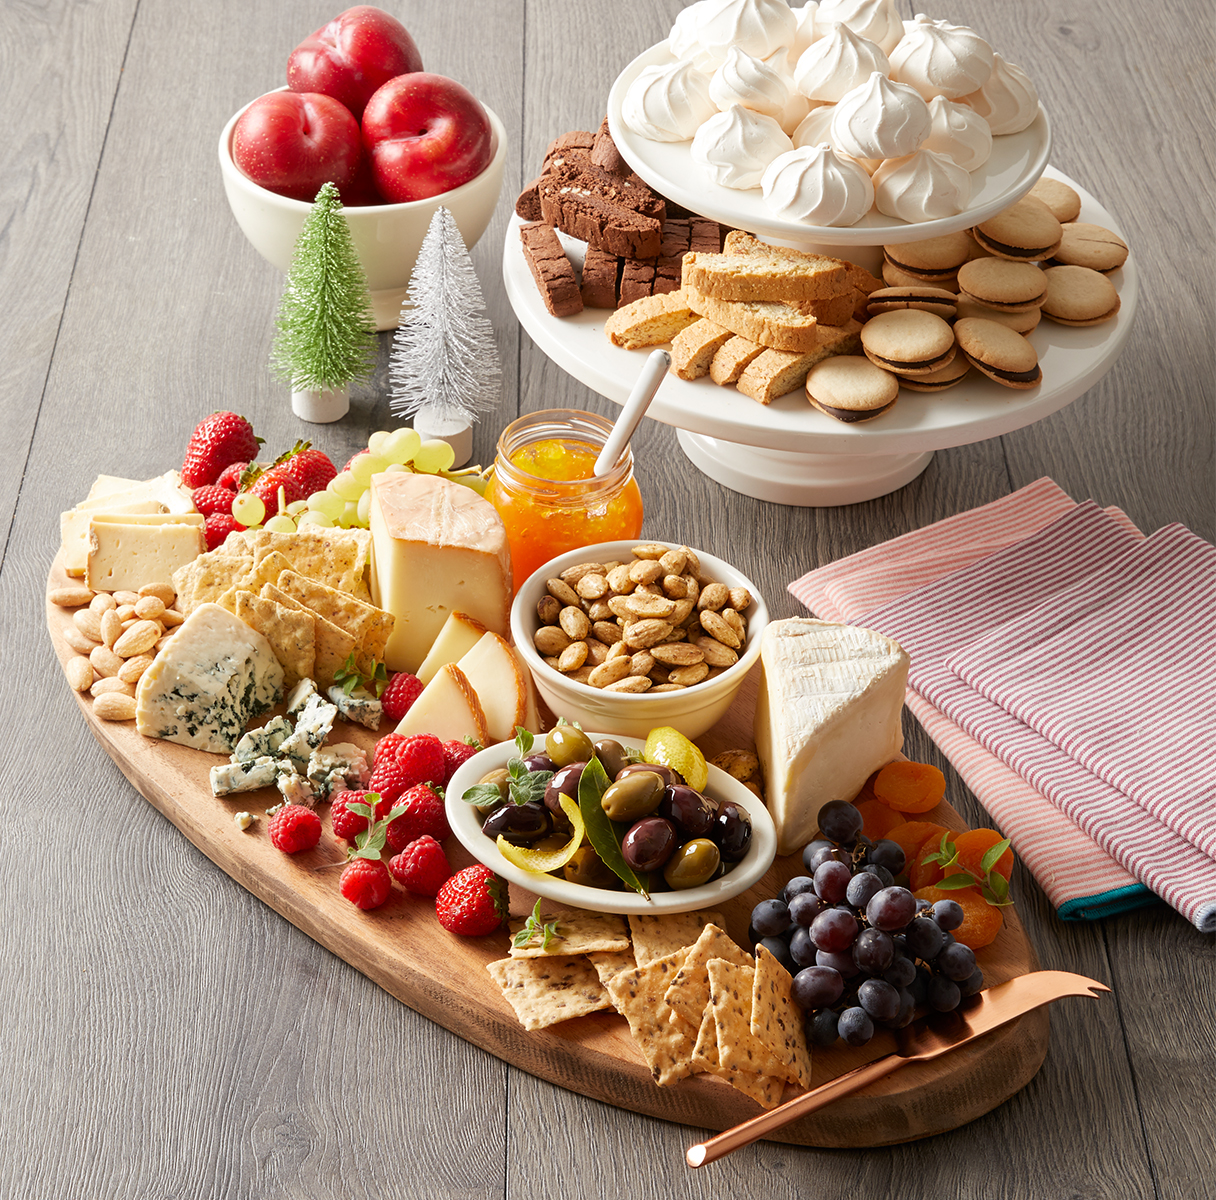 wooden board full of snacks with two-tiered dessert platter